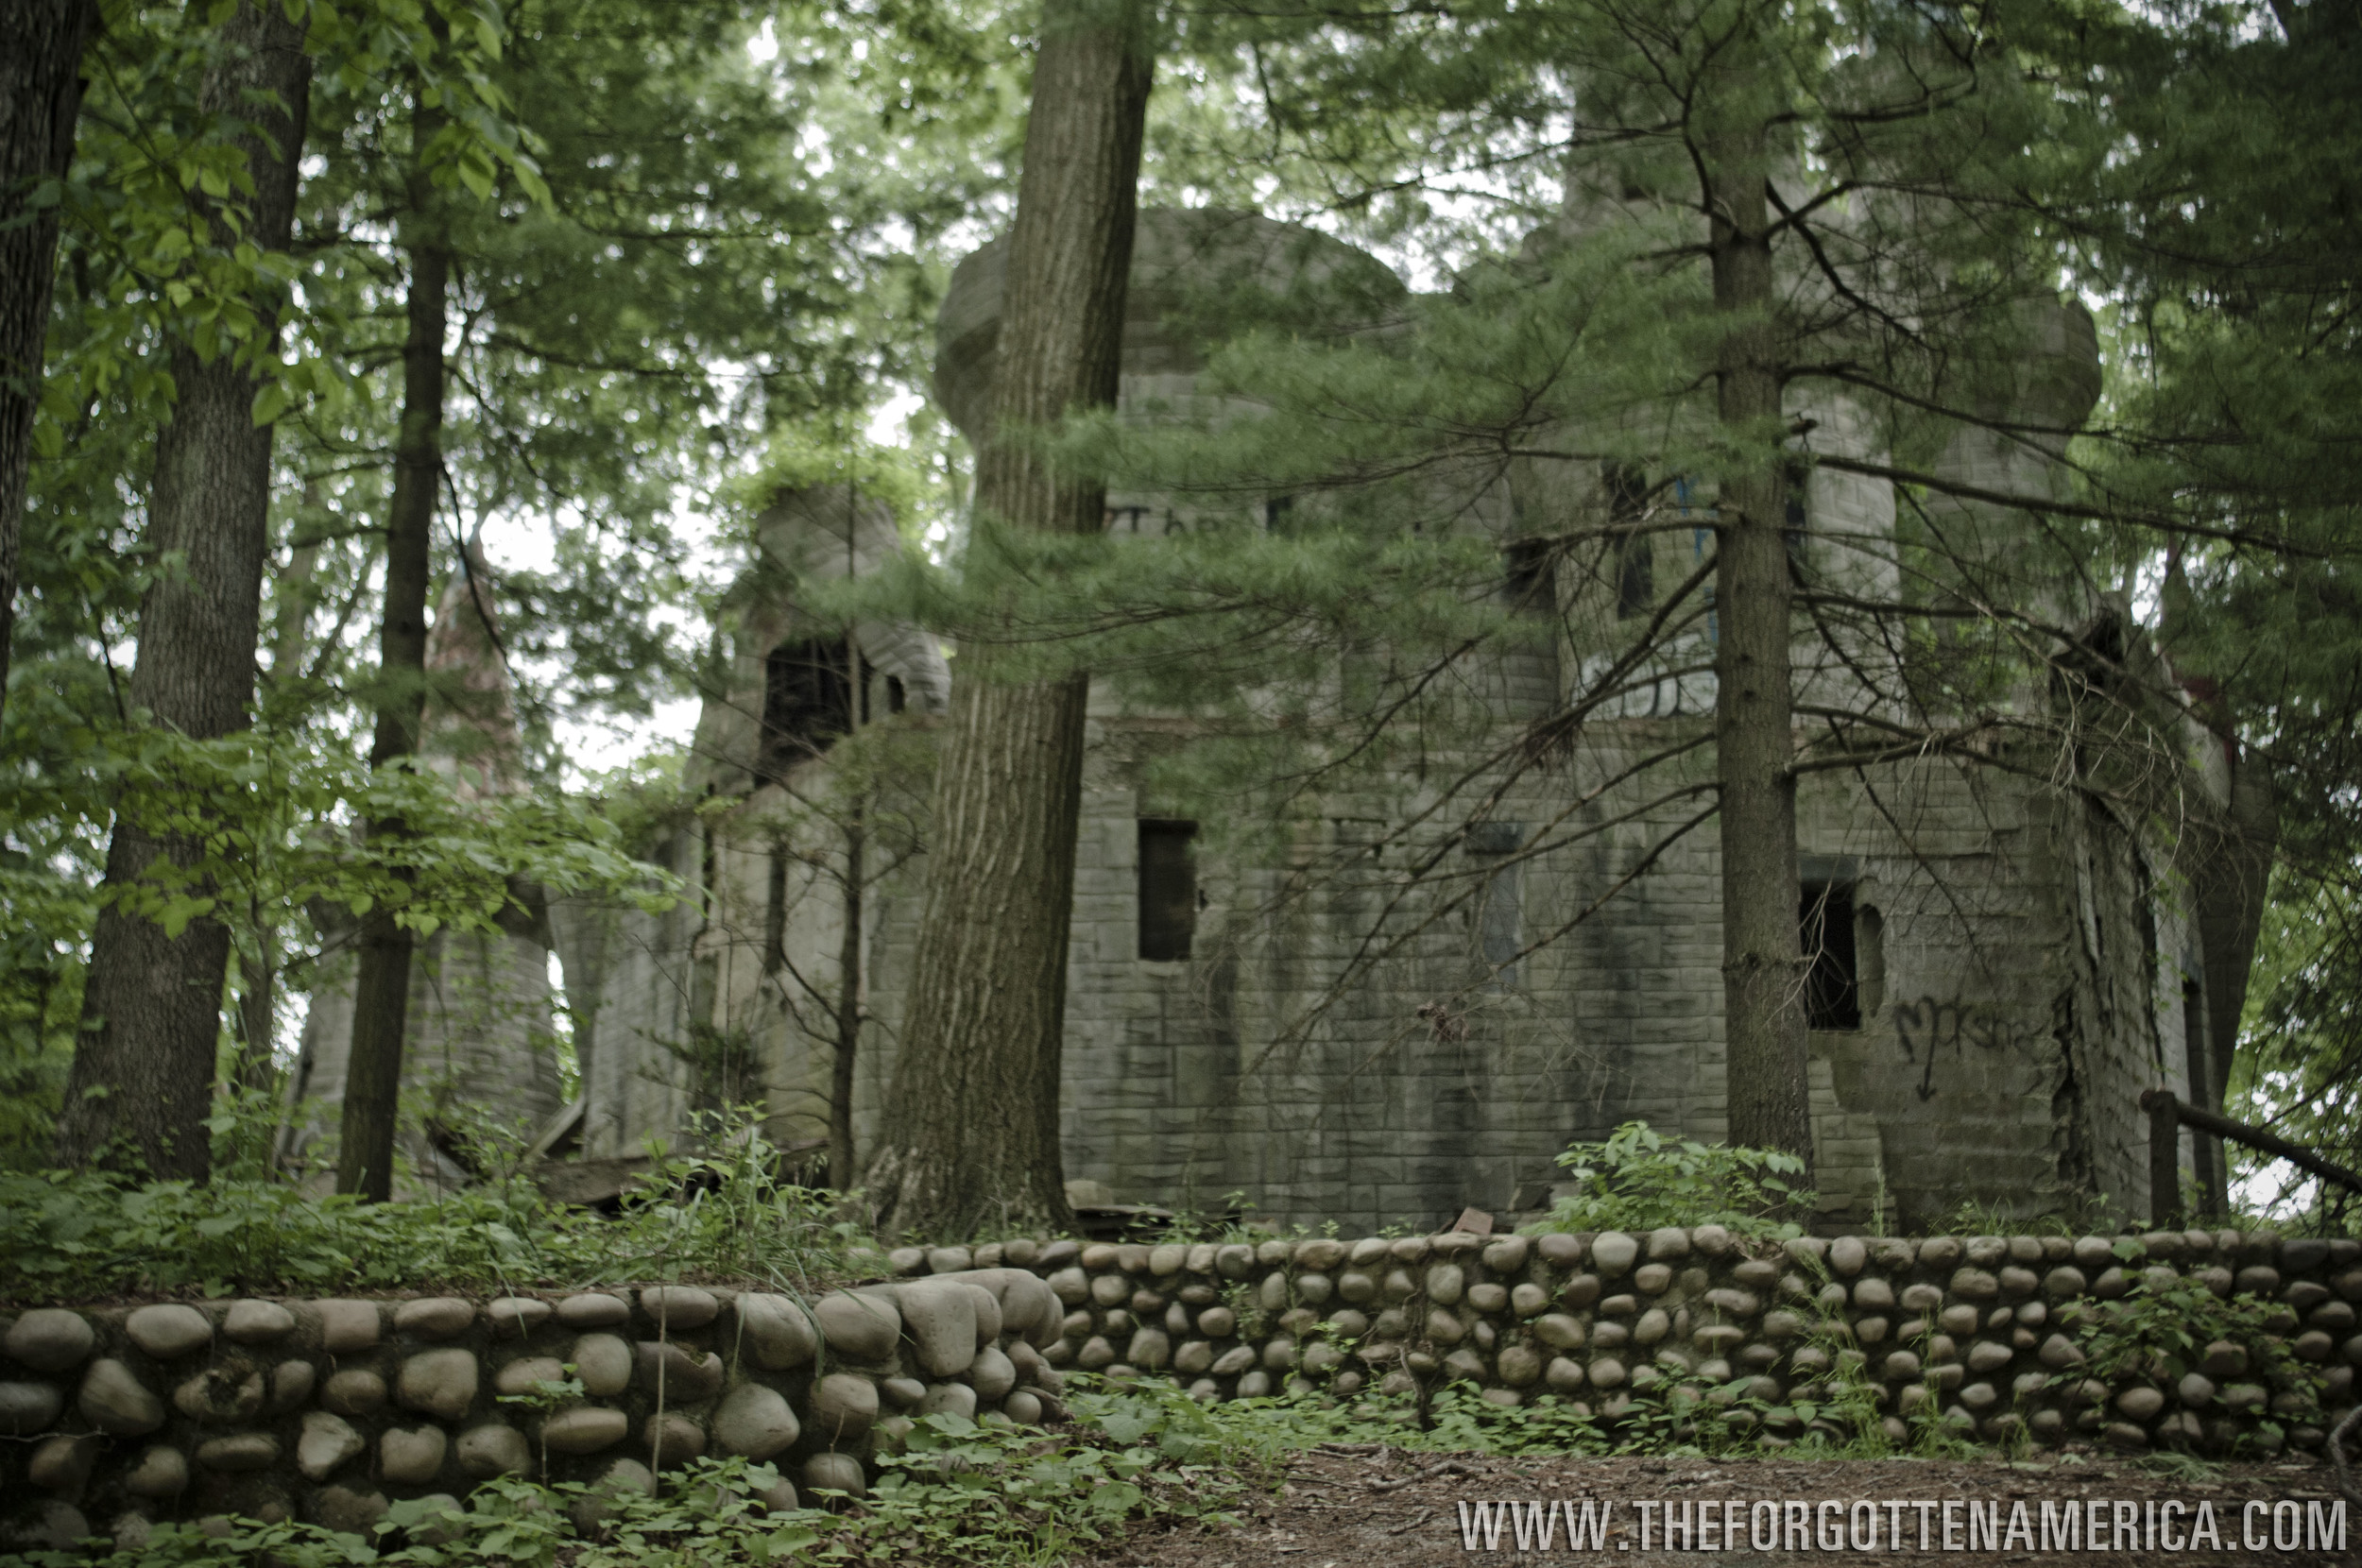 The Enchanted Forest Ellicott City Maryland  THE FORGOTTEN AMERICA